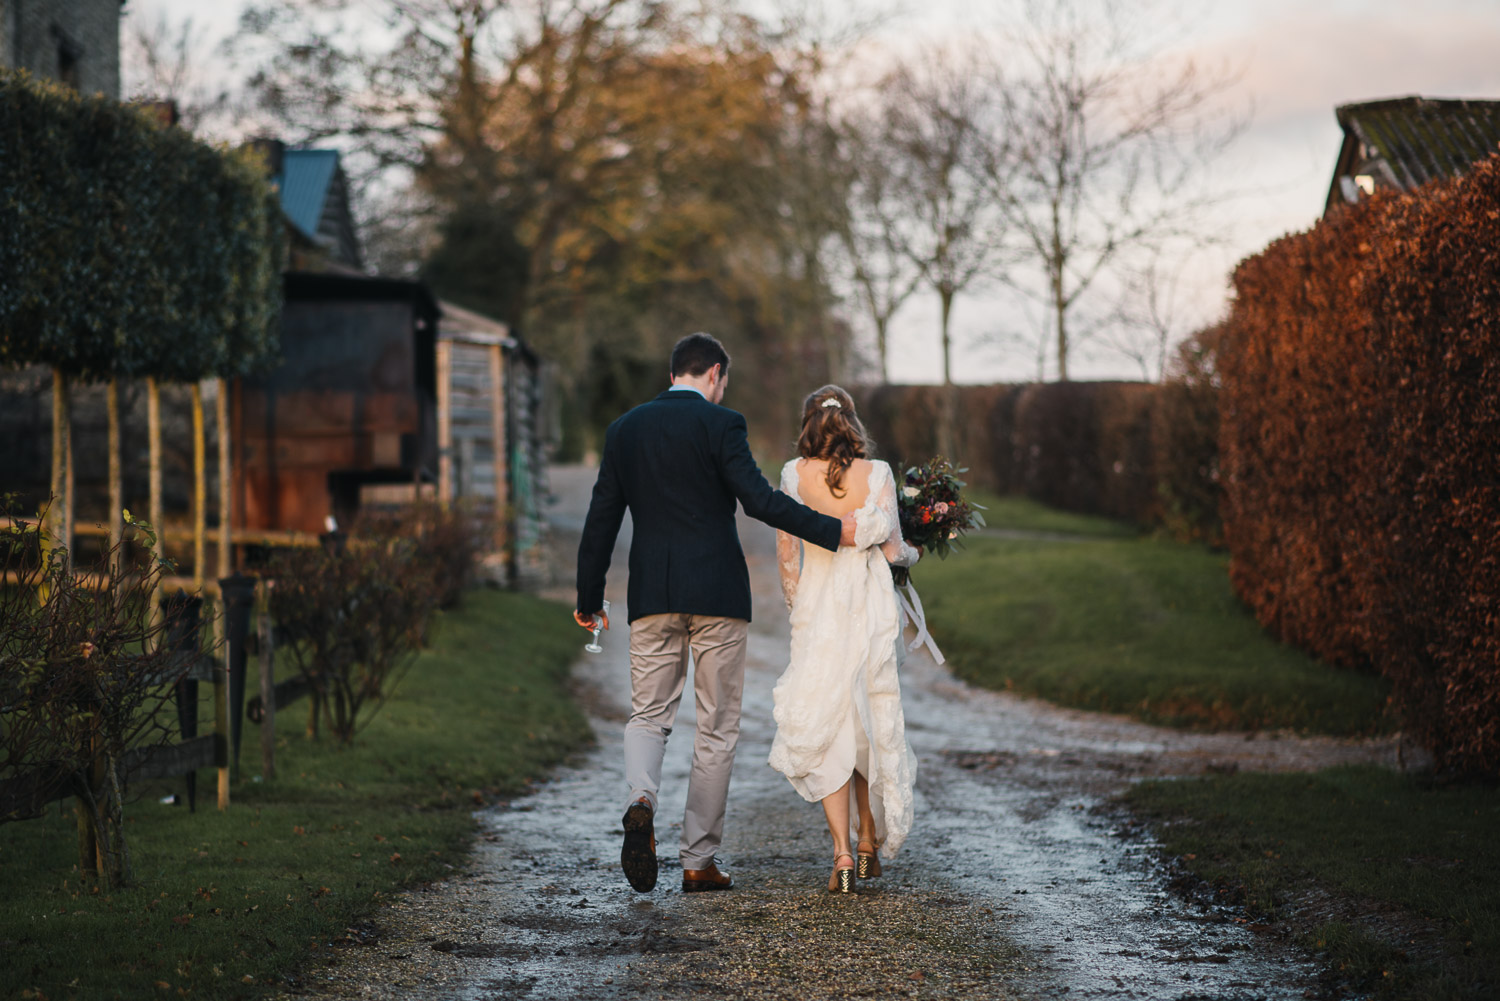 cotswold wedding by creative and alternative london wedding photographer the shannons photography